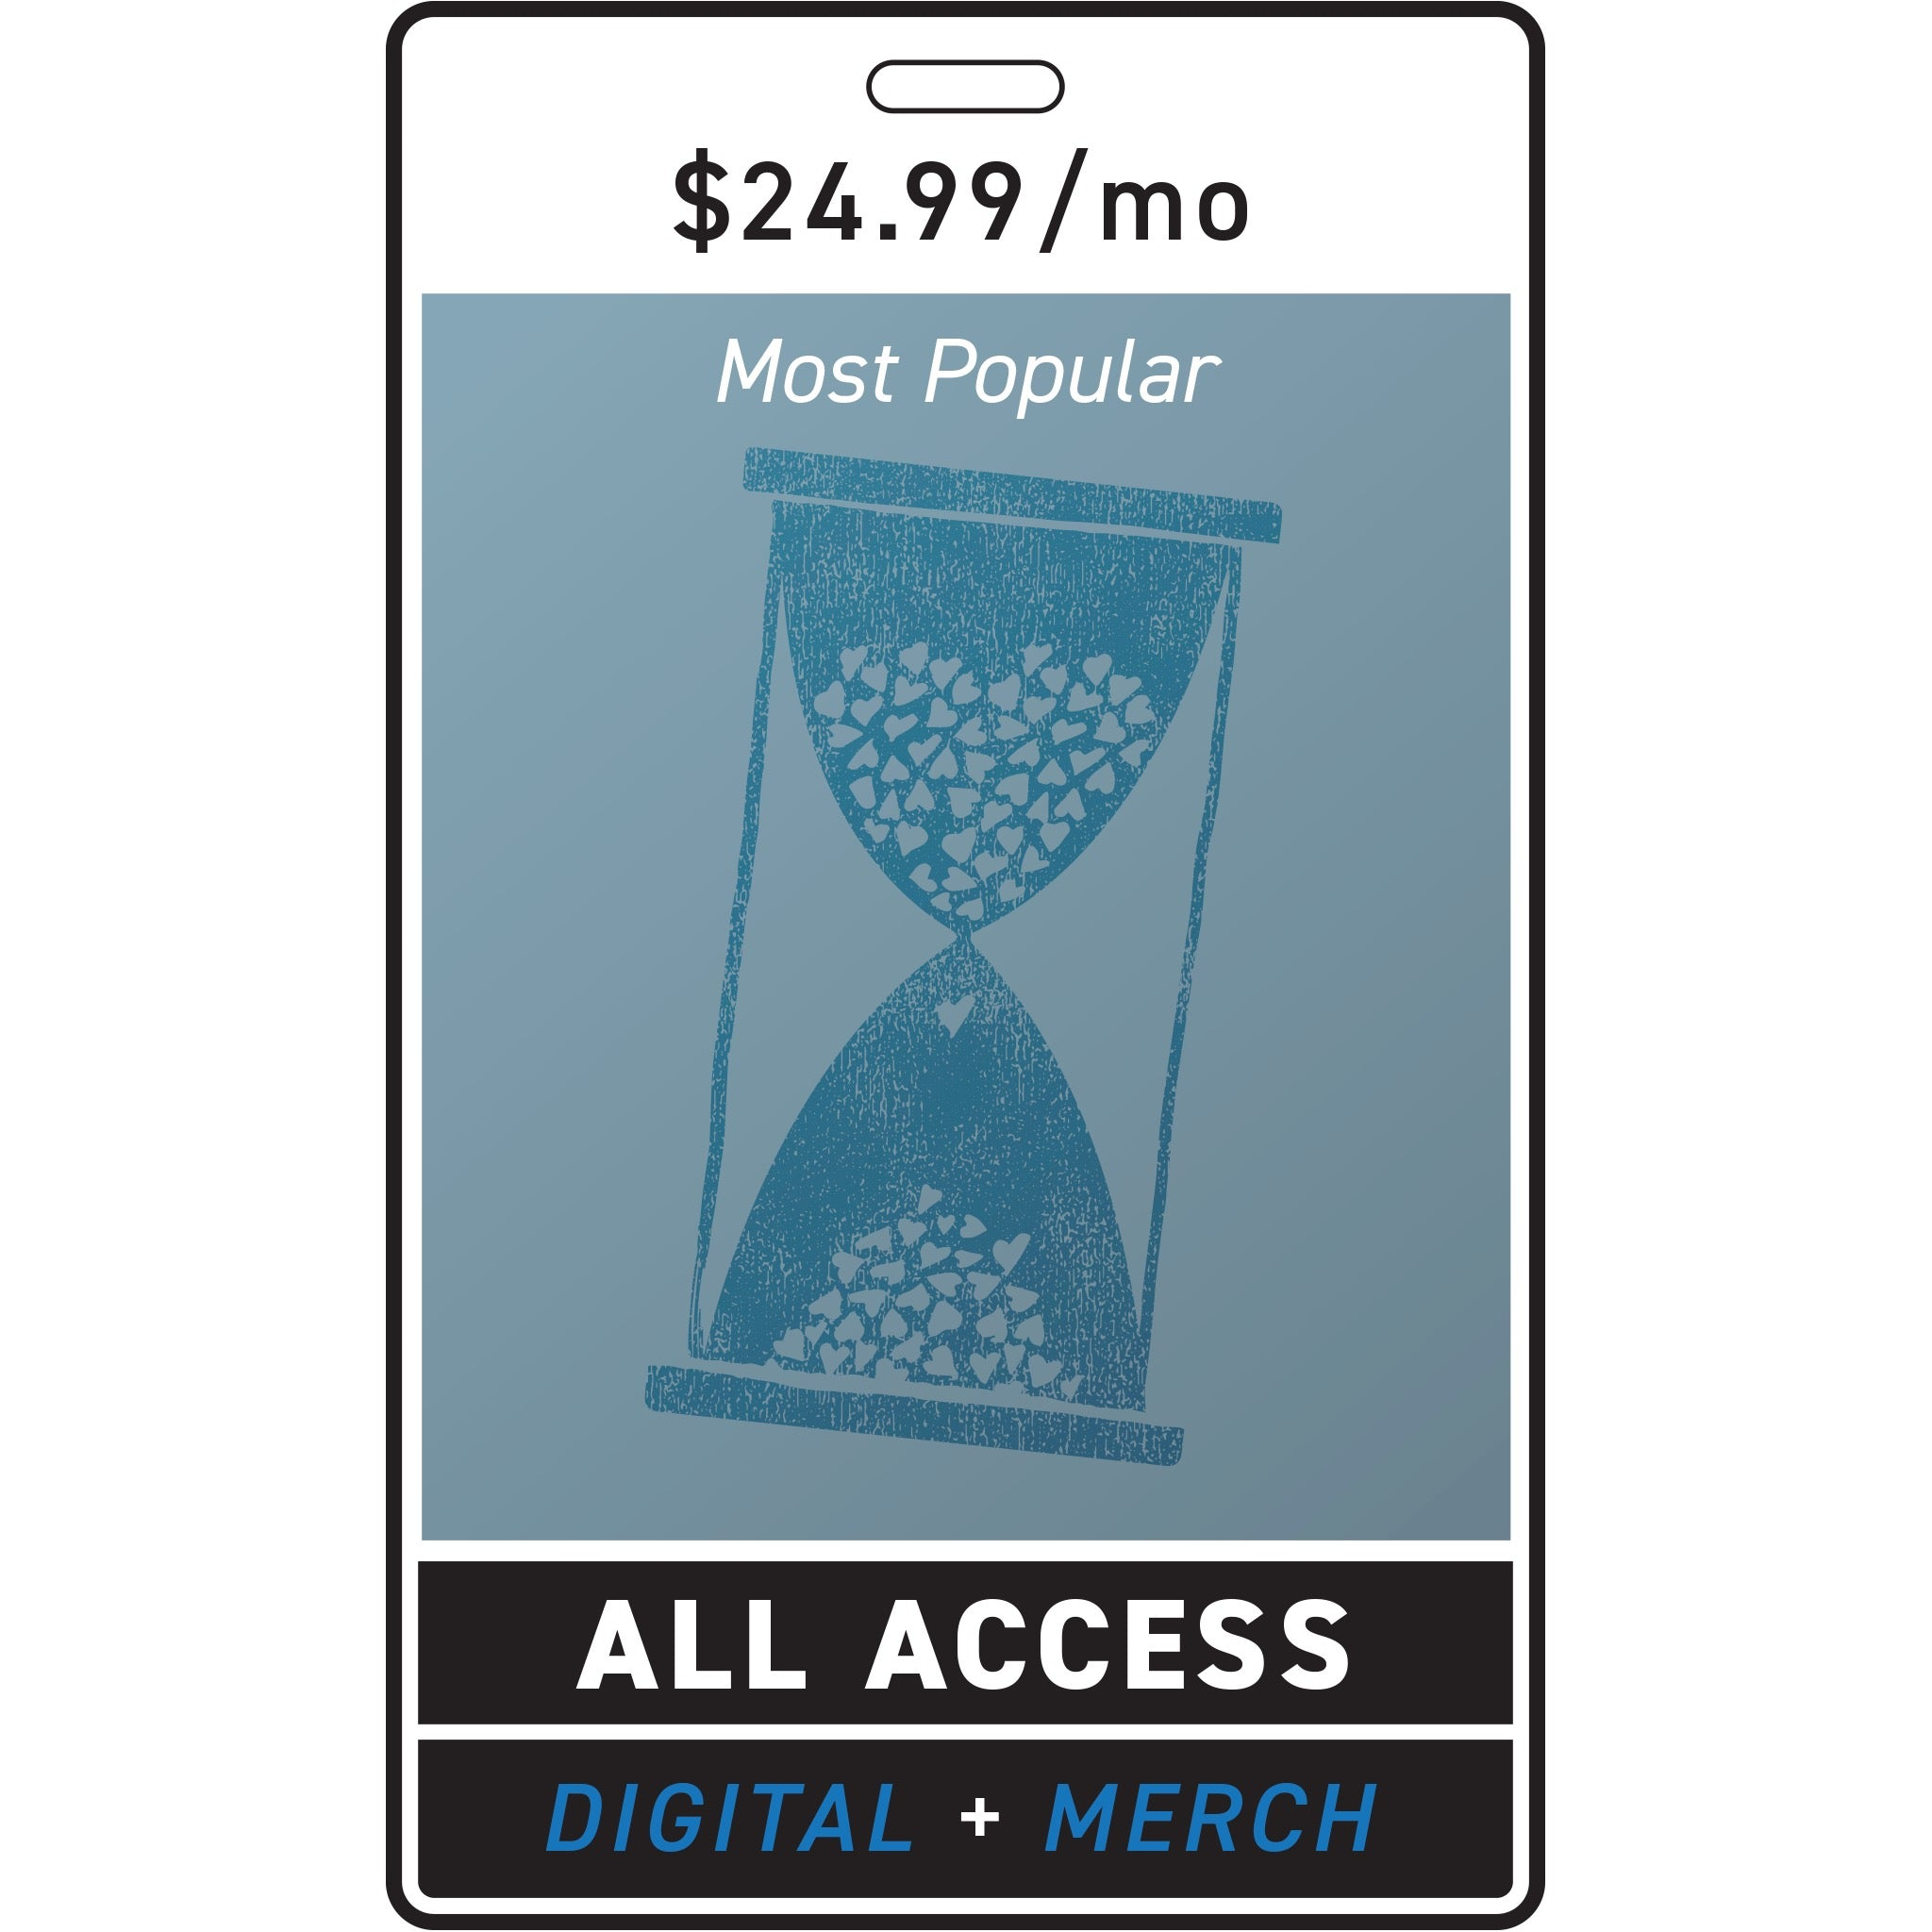 All Access Pass + Merch $24.99/month